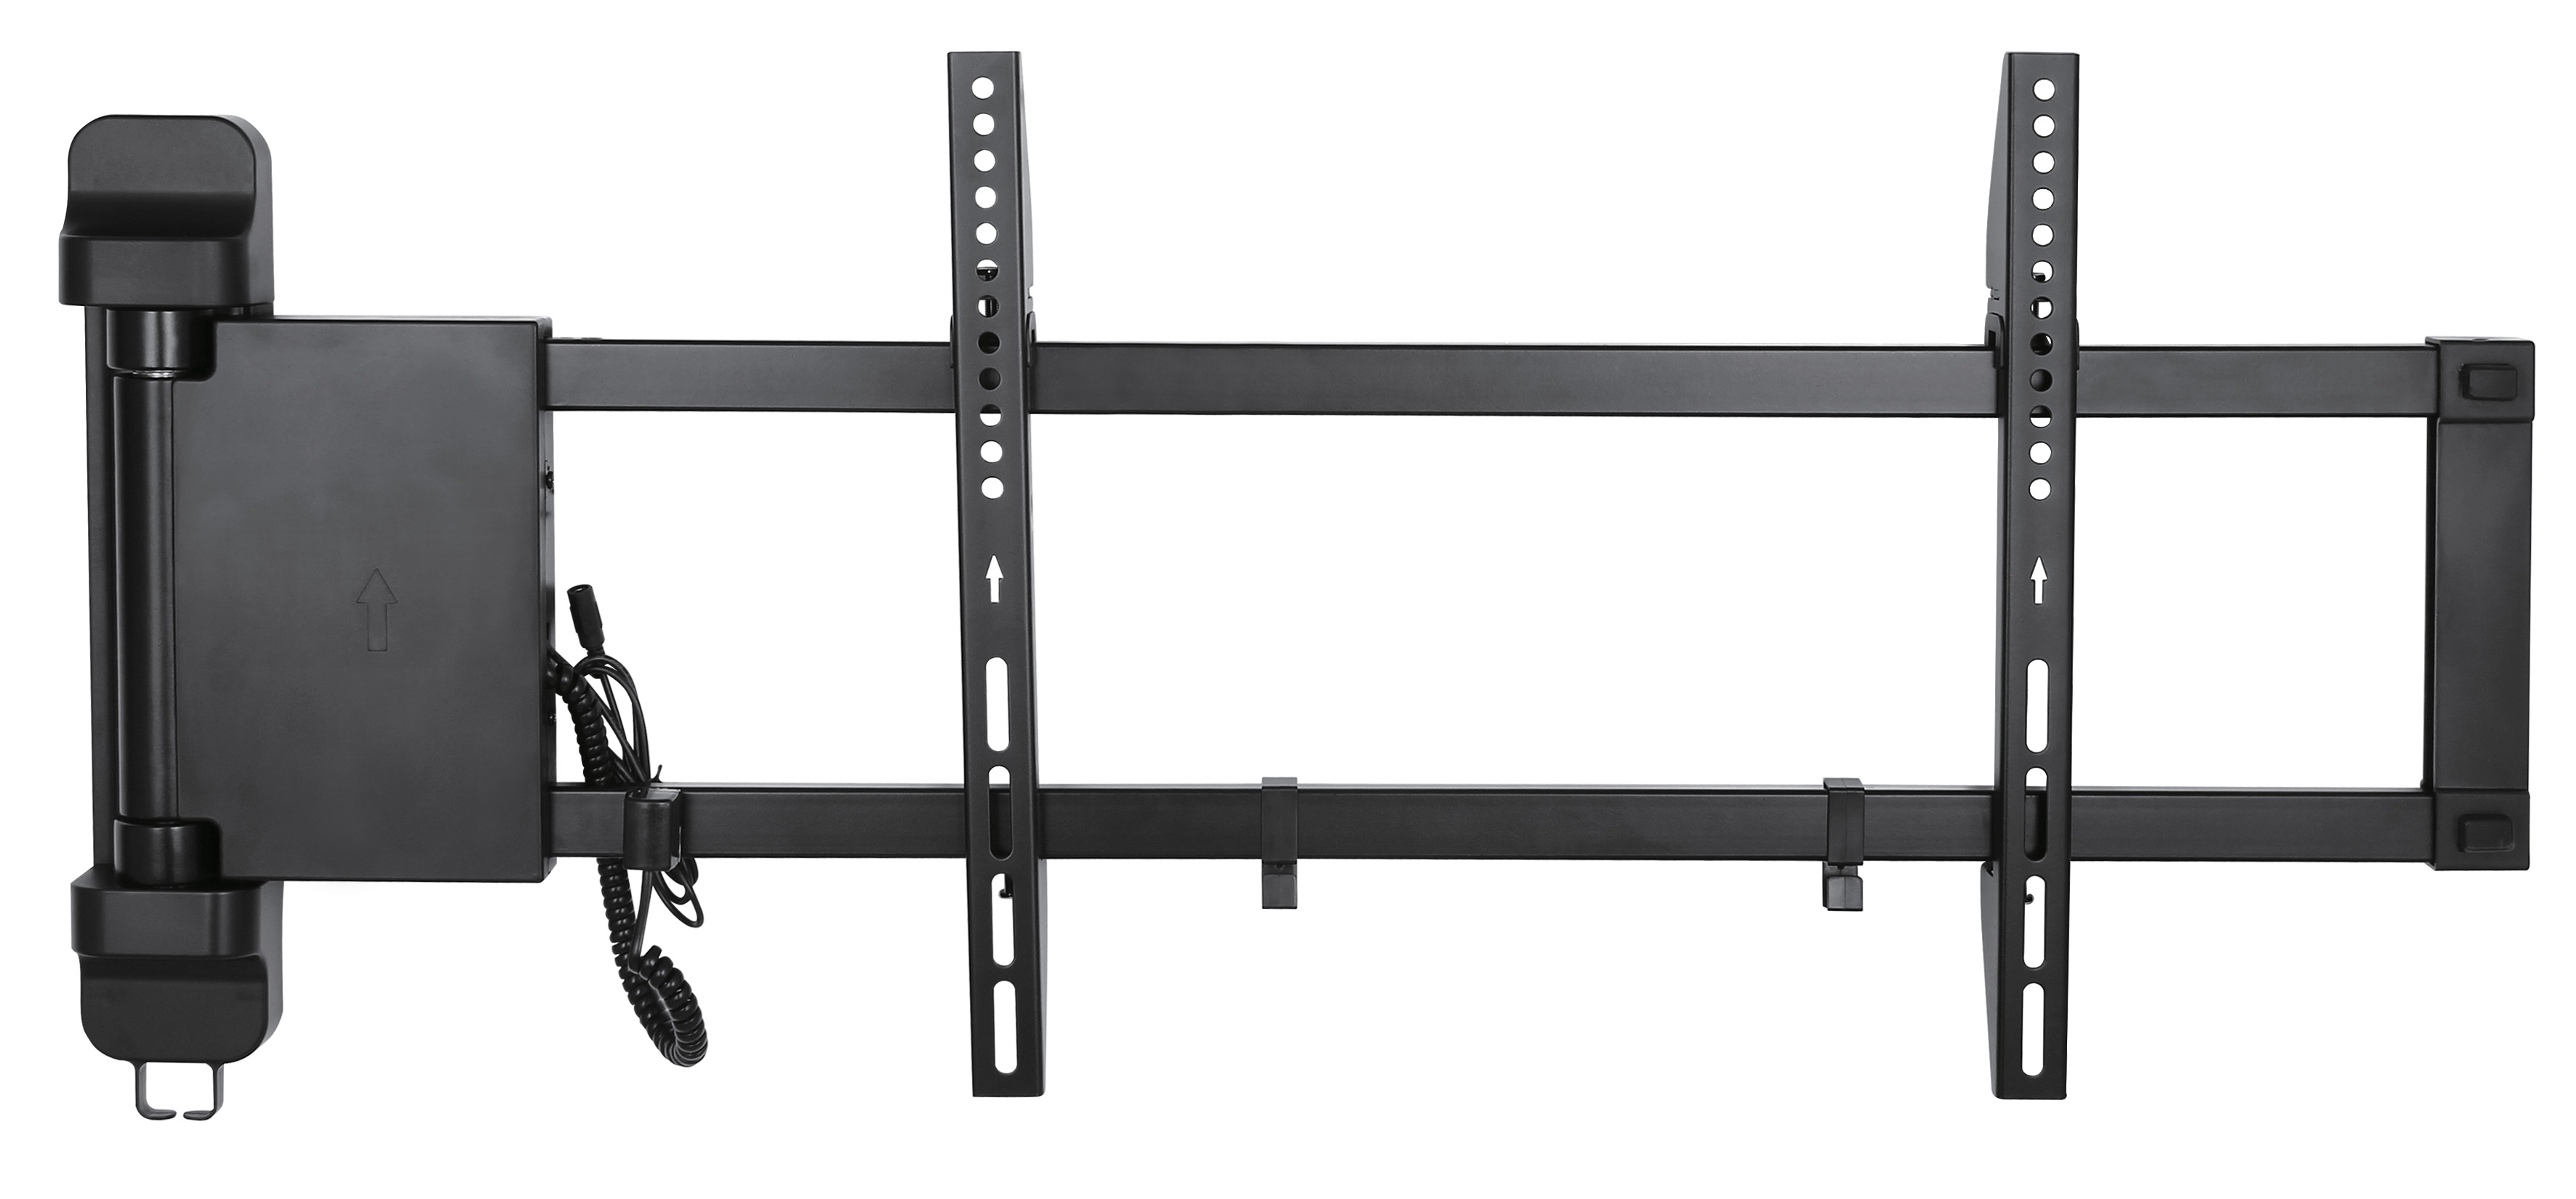 Lithe Audio Remote & Motorized 900 Remote Control TV Wall Mount